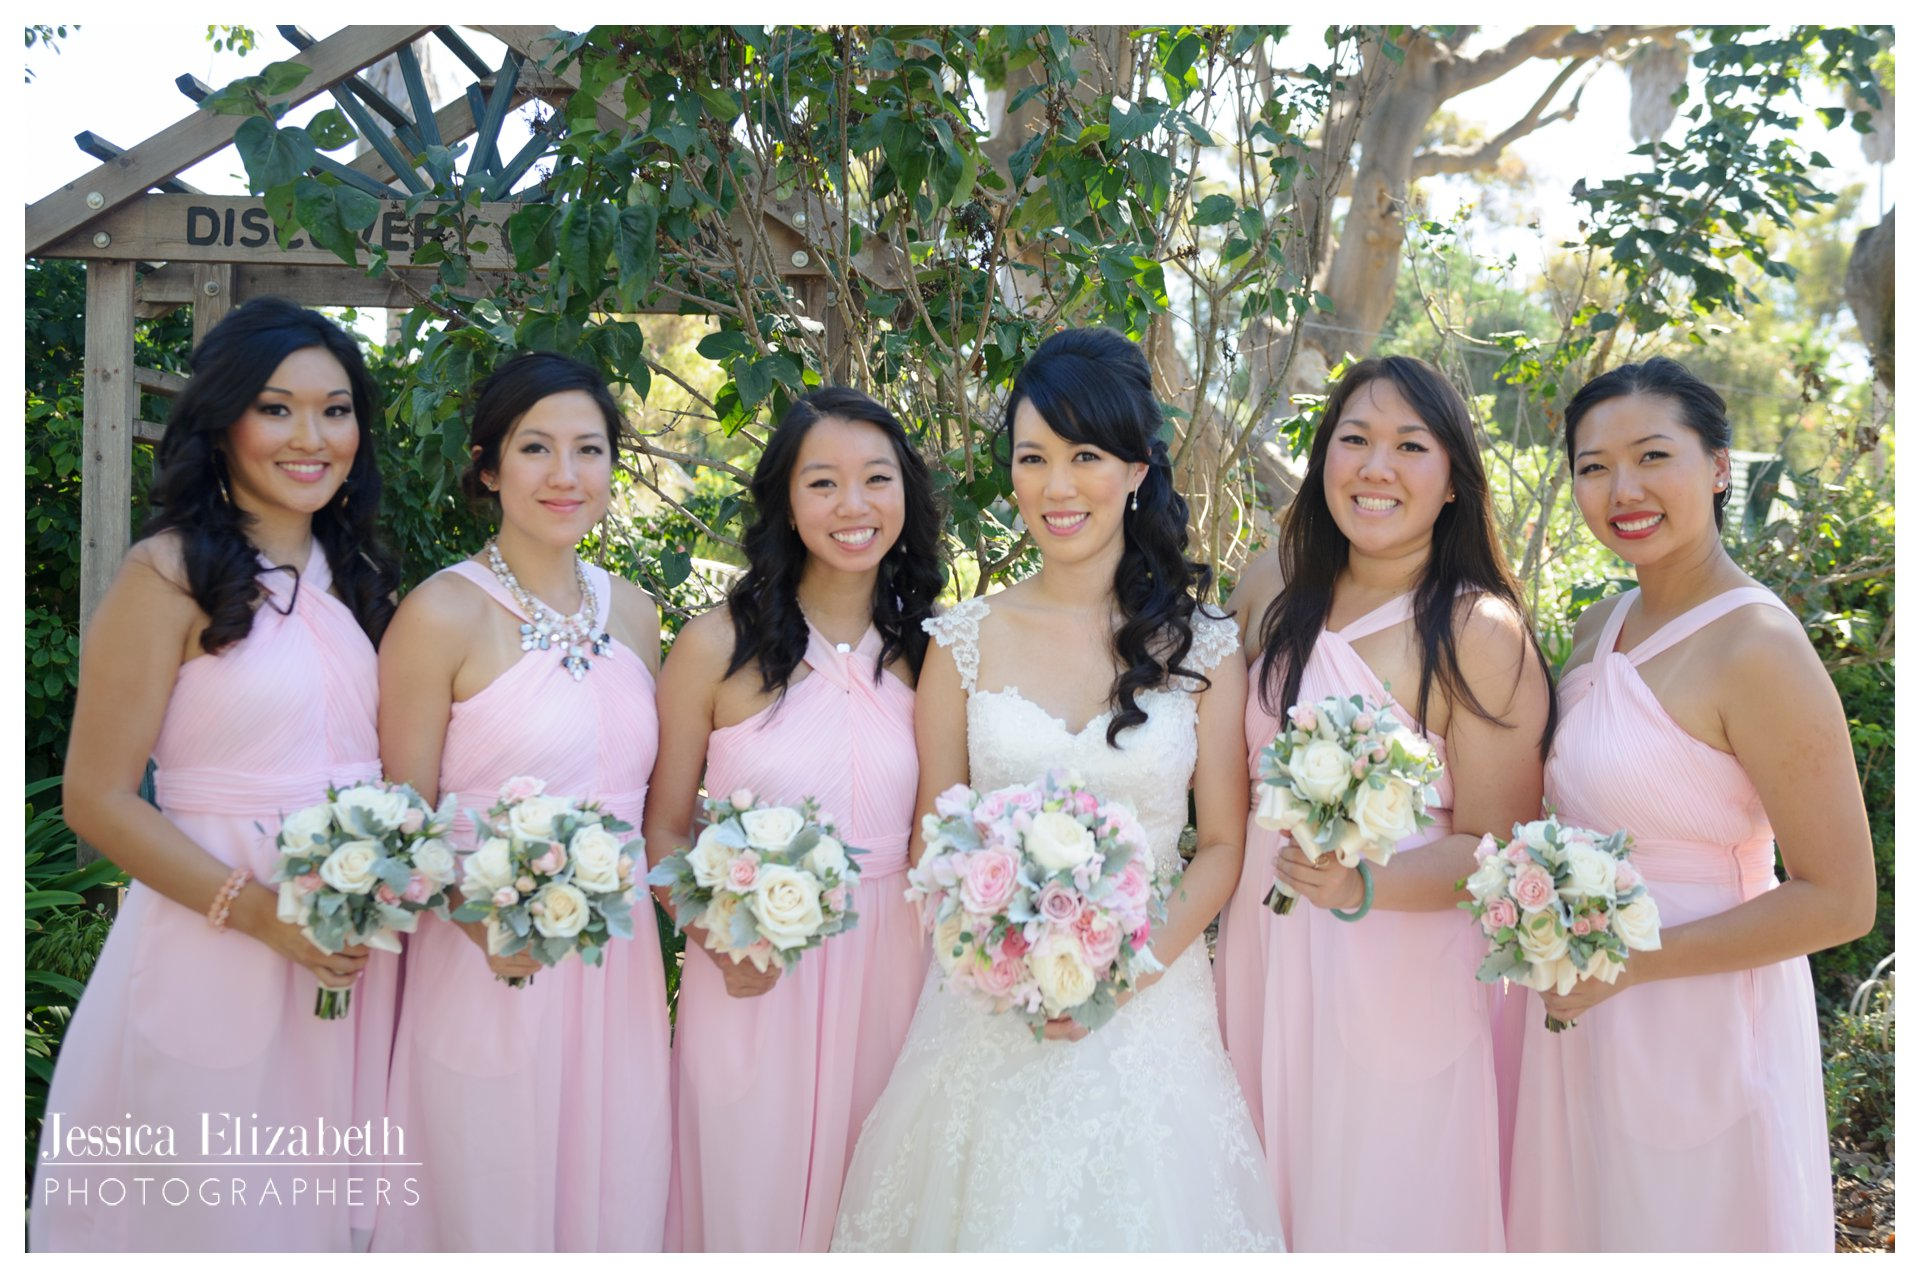 05-South Coast Botanic Garden Palos Verdes Wedding Photography by Jessica Elizabeth